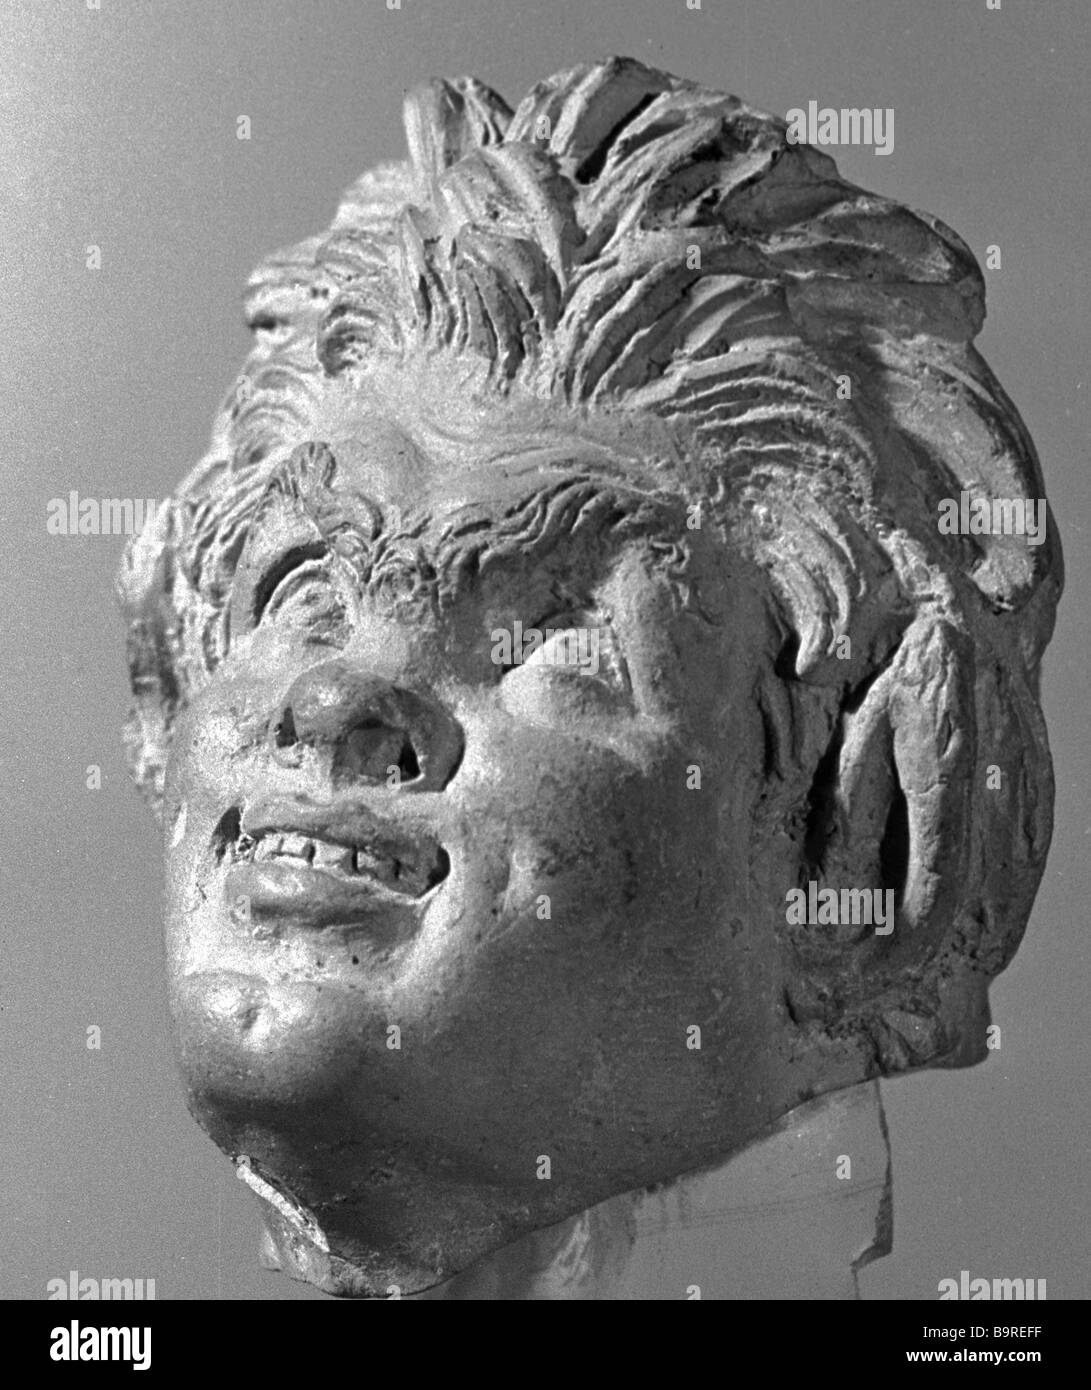 Sculptured head of Satyr found in Fanagoria Collection of Pushkin State Fine Arts Museum - Stock Image